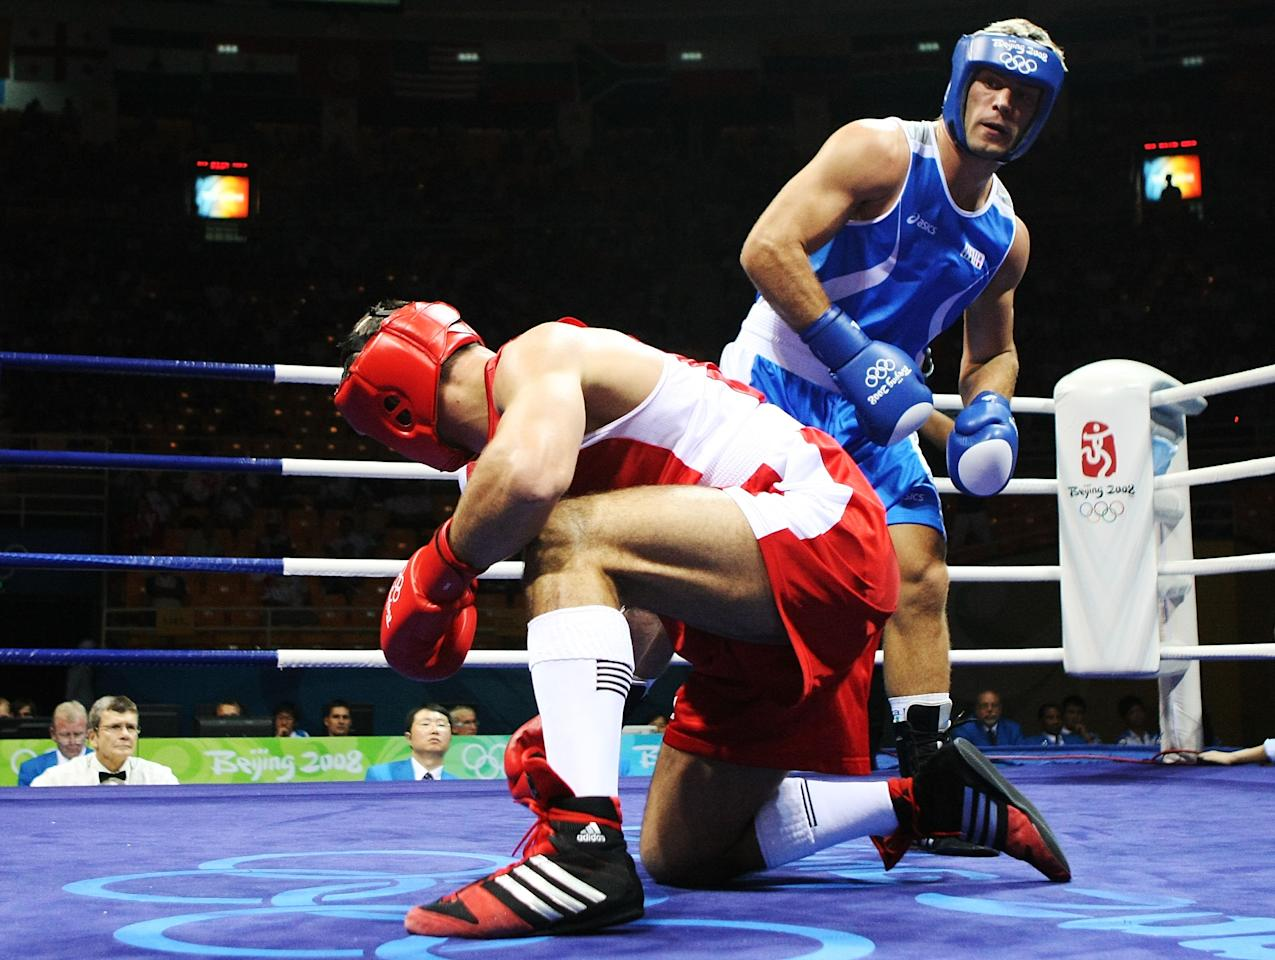 BEIJING - AUGUST 23:  Rakhim Chakhkiev of Russia (red) competes against Clemente Russo of Italy (blue) in the Men's Heavy (91kg) Final Bout held at Workers' Indoor Arena on Day 15 of the Beijing 2008 Olympic Games on August 23, 2008 in Beijing, China.  (Photo by Nick Laham/Getty Images)